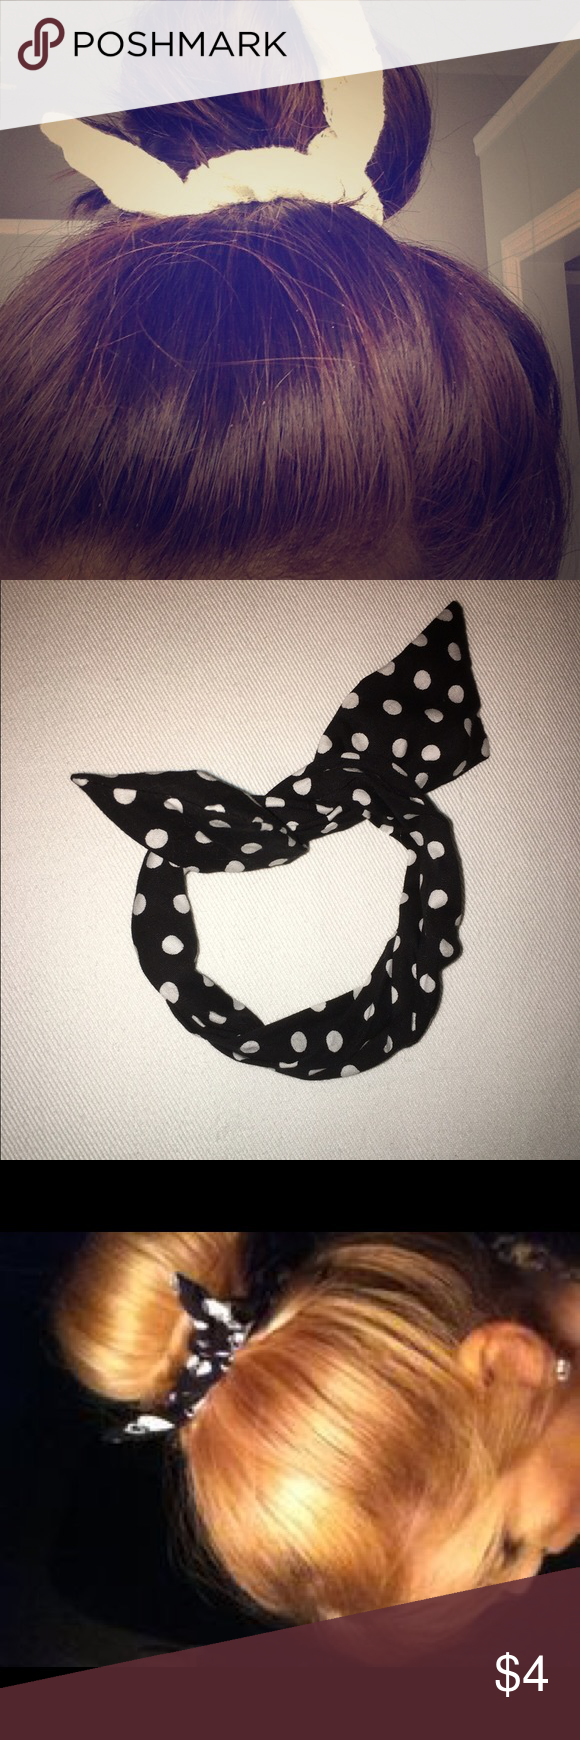 Black & white polka dot wire wraparound for bun! Super cute. Worn once. Works great! Great shape. The 2nd picture is the product you're getting. 😍 Claire's Accessories Hair Accessories